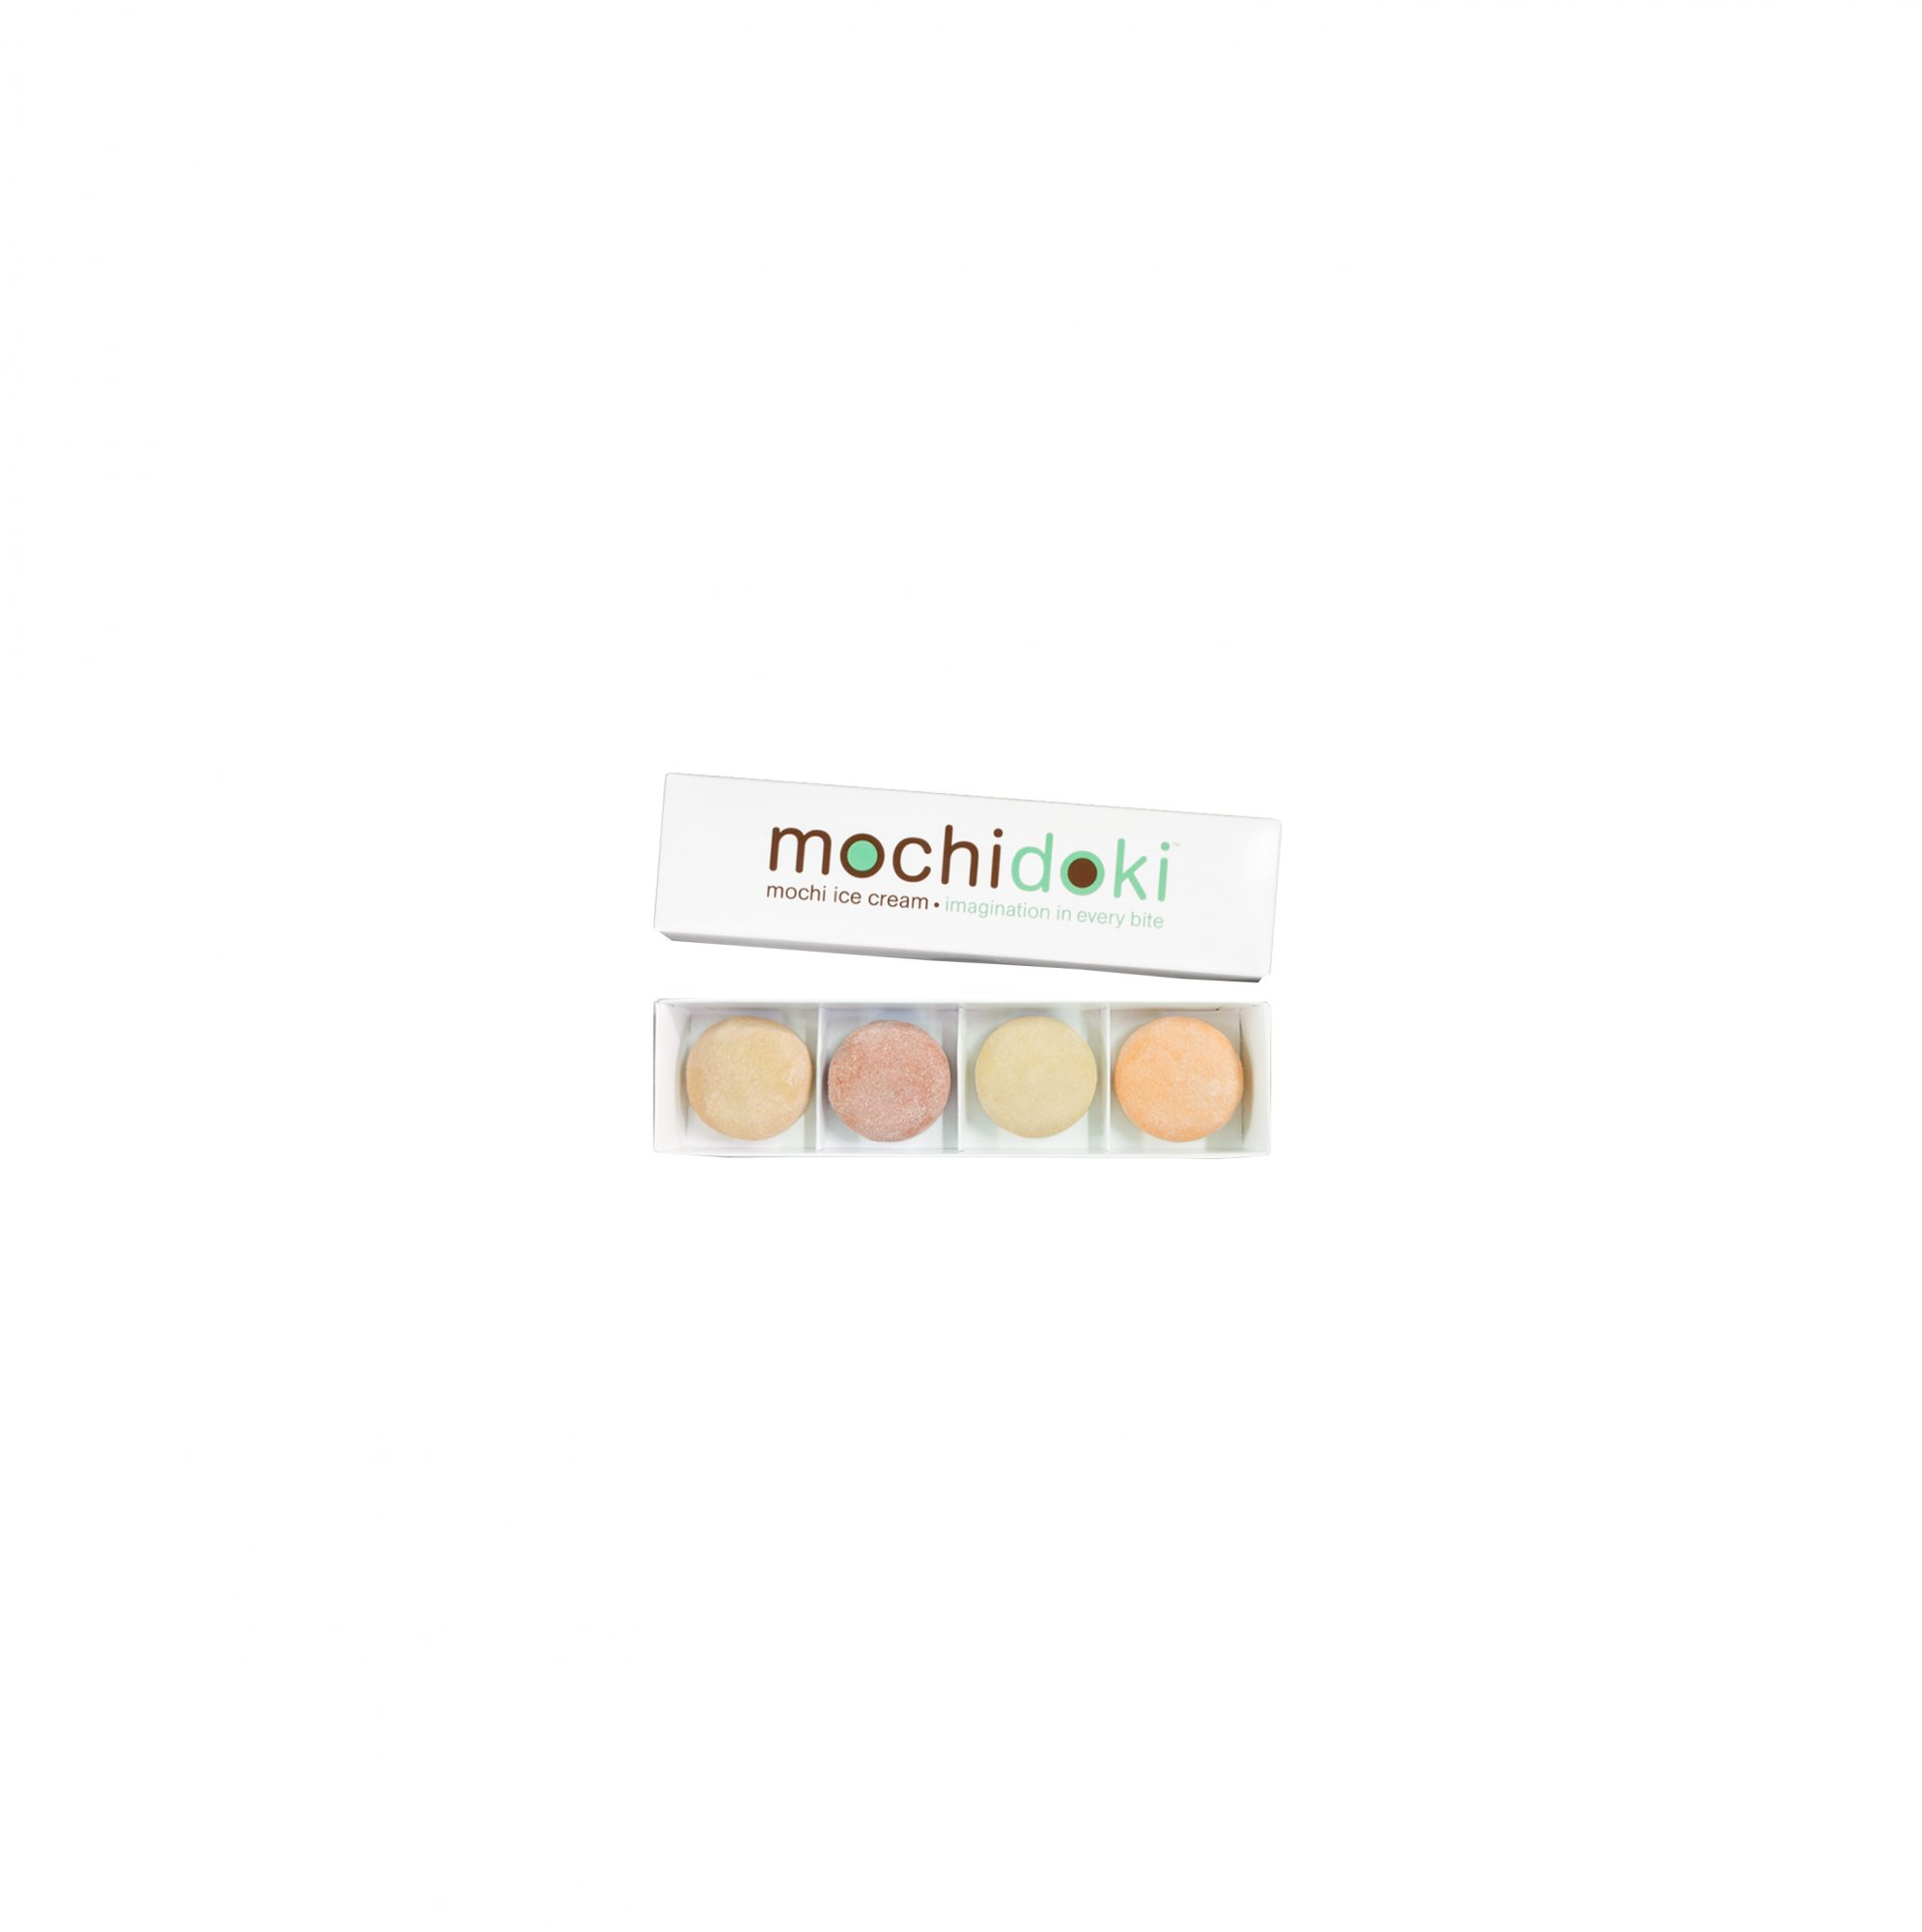 Holiday Flavored Mochi Ice Cream